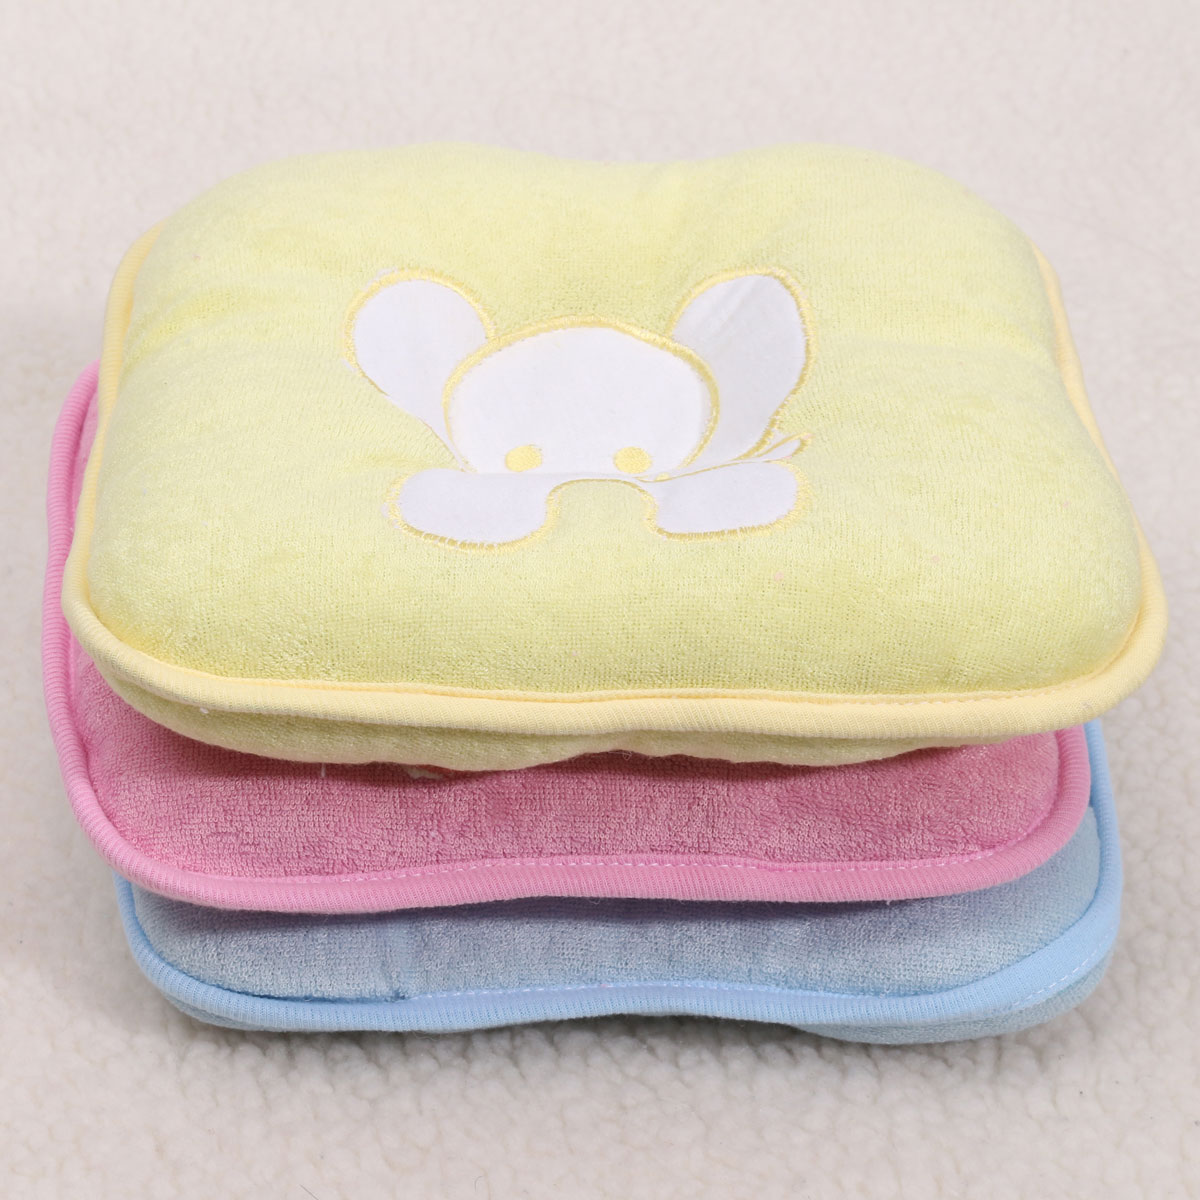 Baby Infant Pillow Elephant Prevent Flat Head For Baby Car